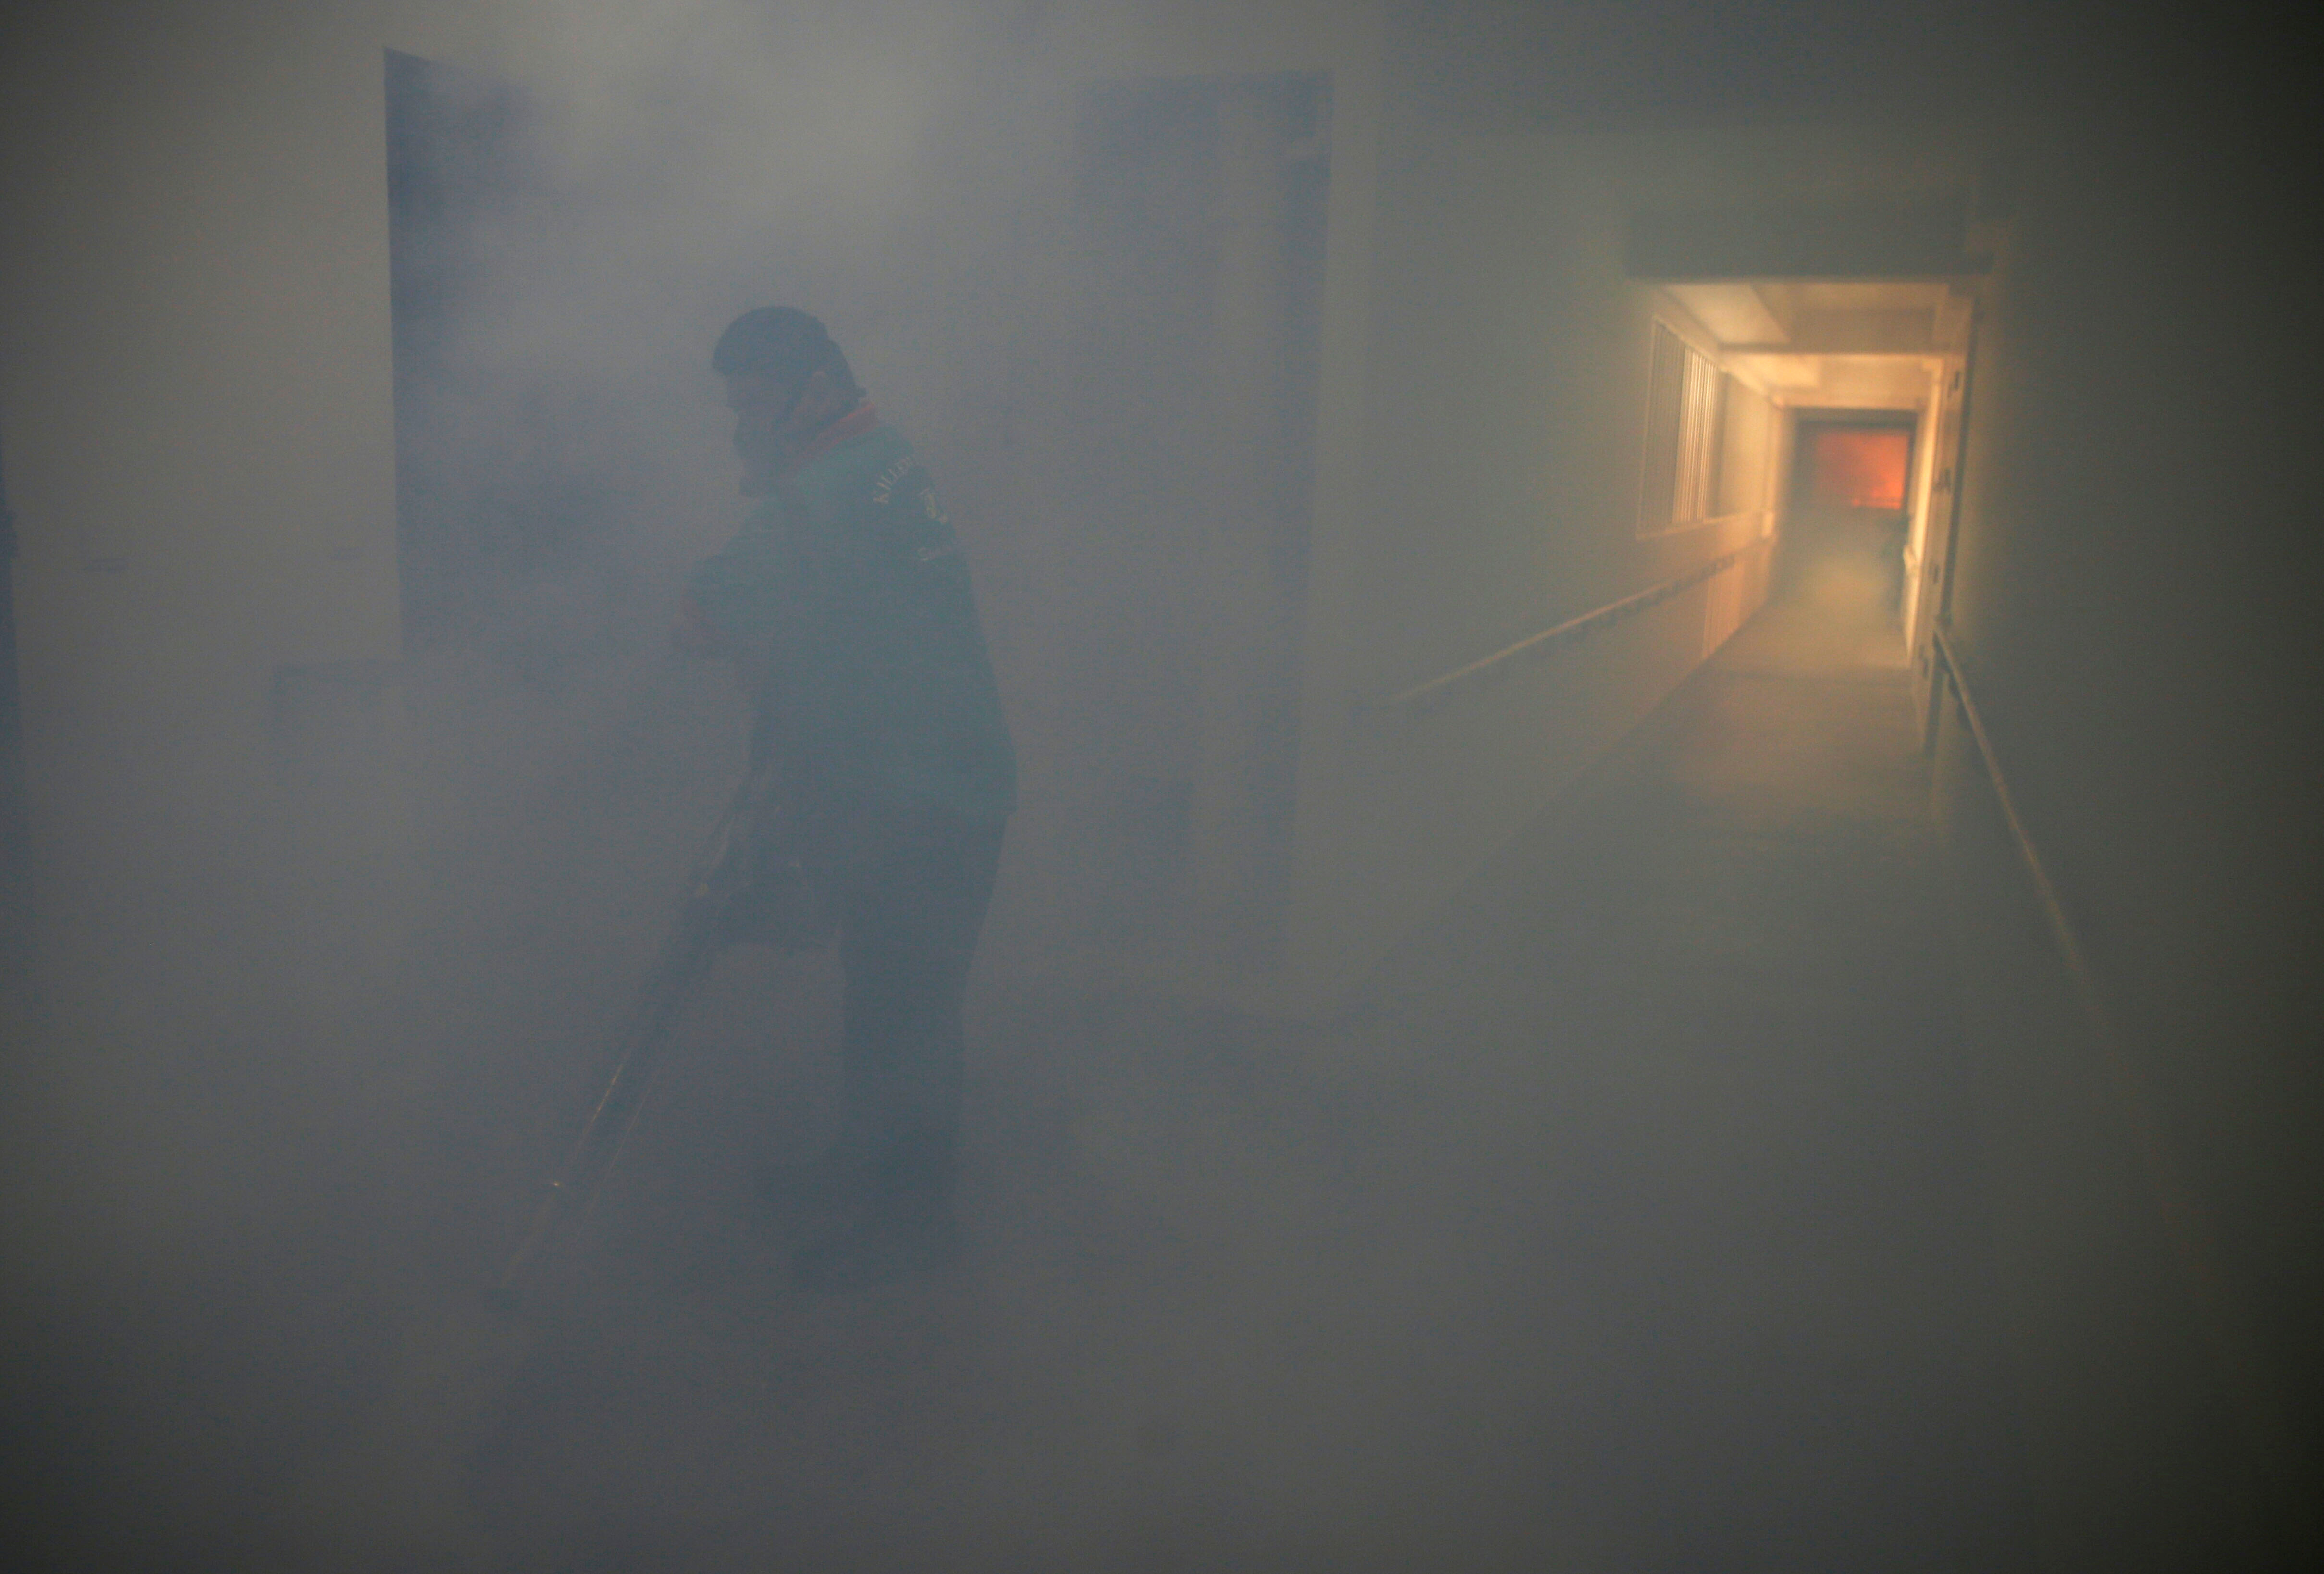 A worker fogs the corridor of a public housing estate in the vicinity where a locally transmitted Zika virus case was discovered, in Singapore